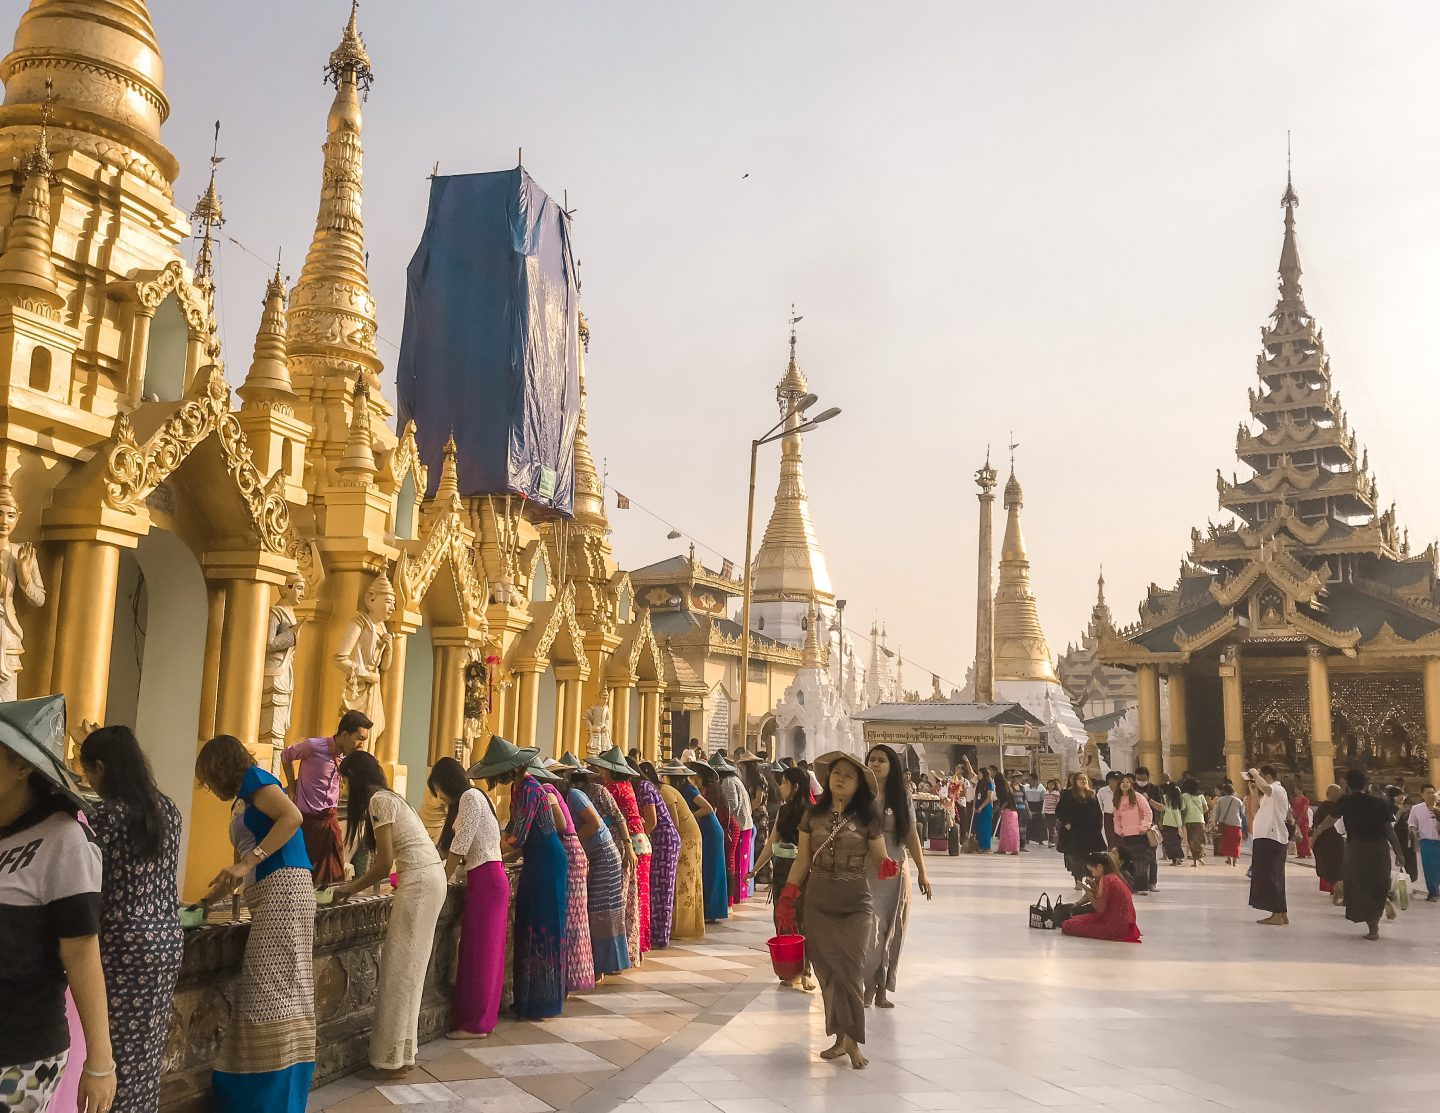 Women in colourful dress at Shwedagon Pagoda